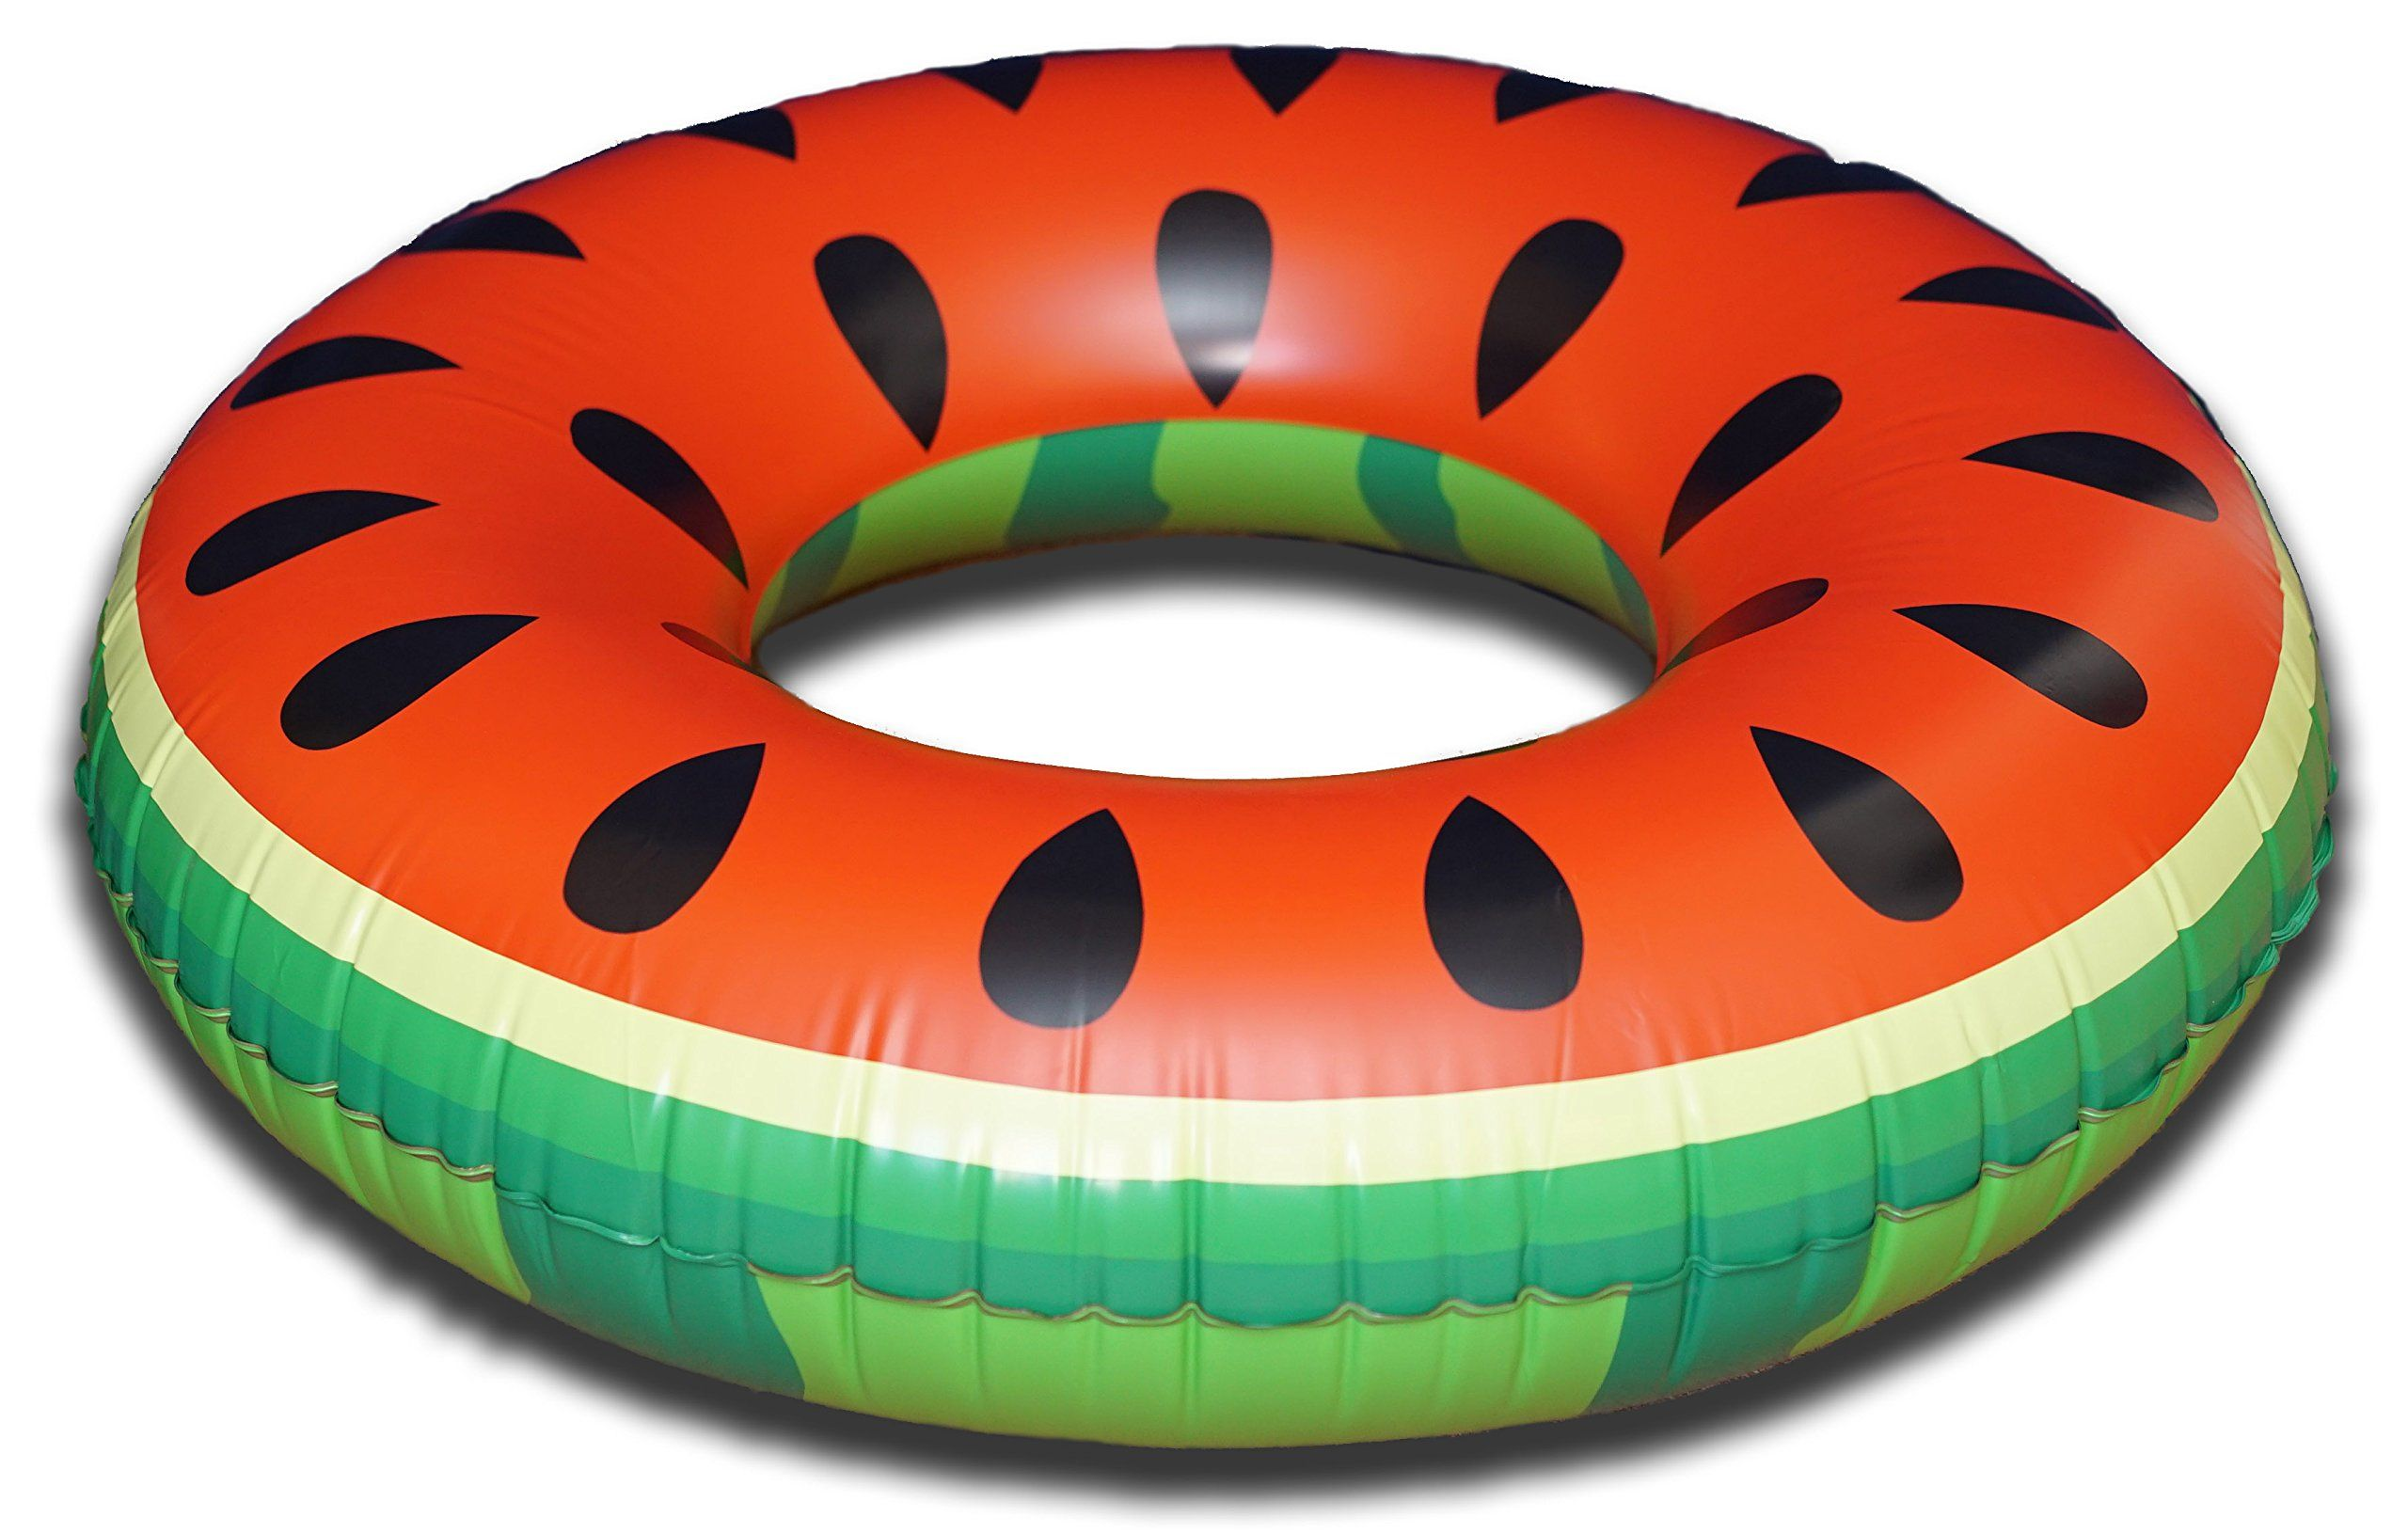 Freshy Fresh Brand Watermelon Pool Float Large Inflatable Swim Ring Innertube 4 Feet Wide You Can Find More Details By Visiting The Imag Decoratie Ballonnen